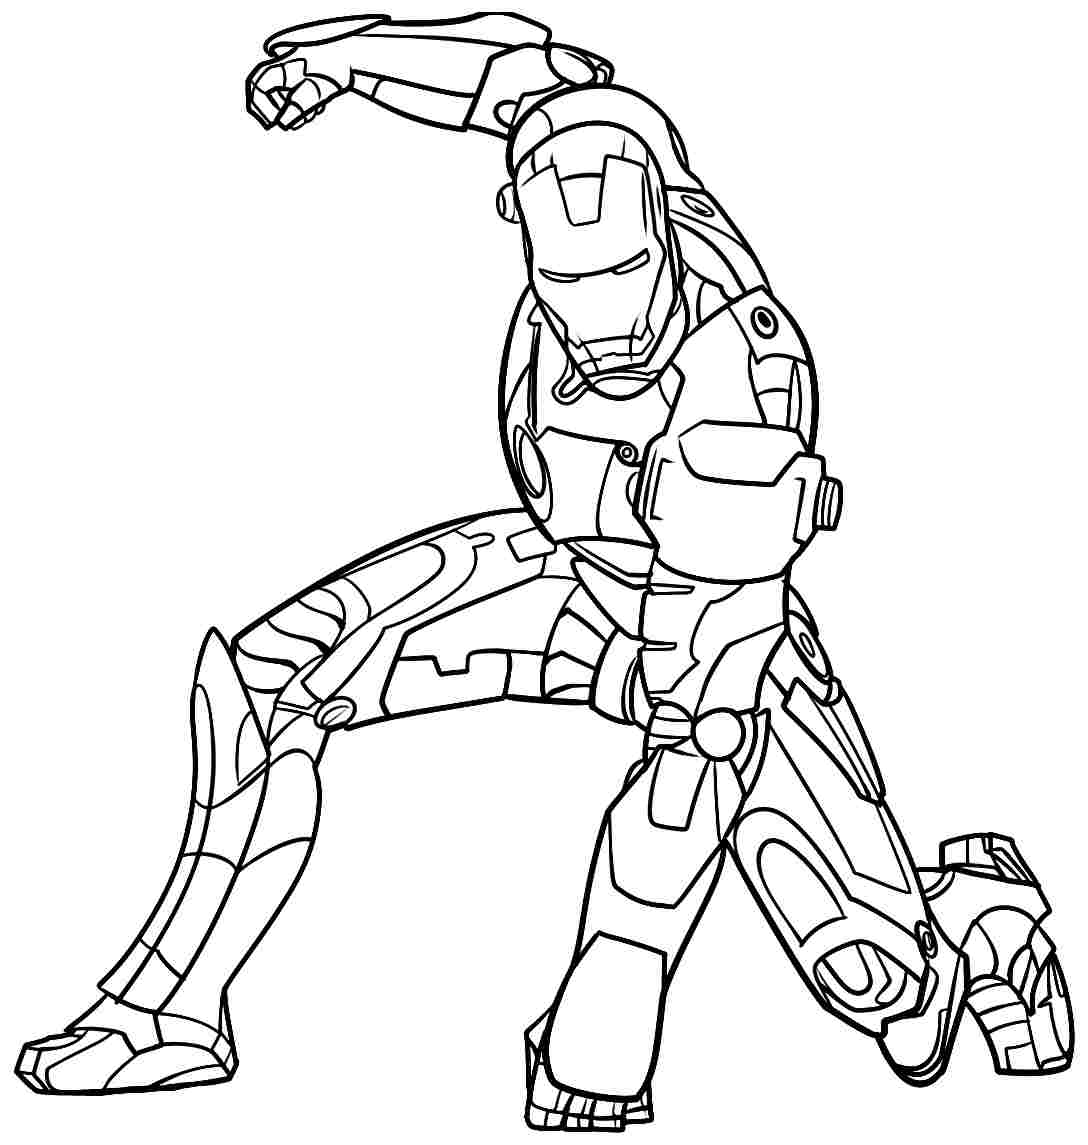 iron man outline drawing iron man outline drawing at paintingvalleycom explore drawing outline man iron